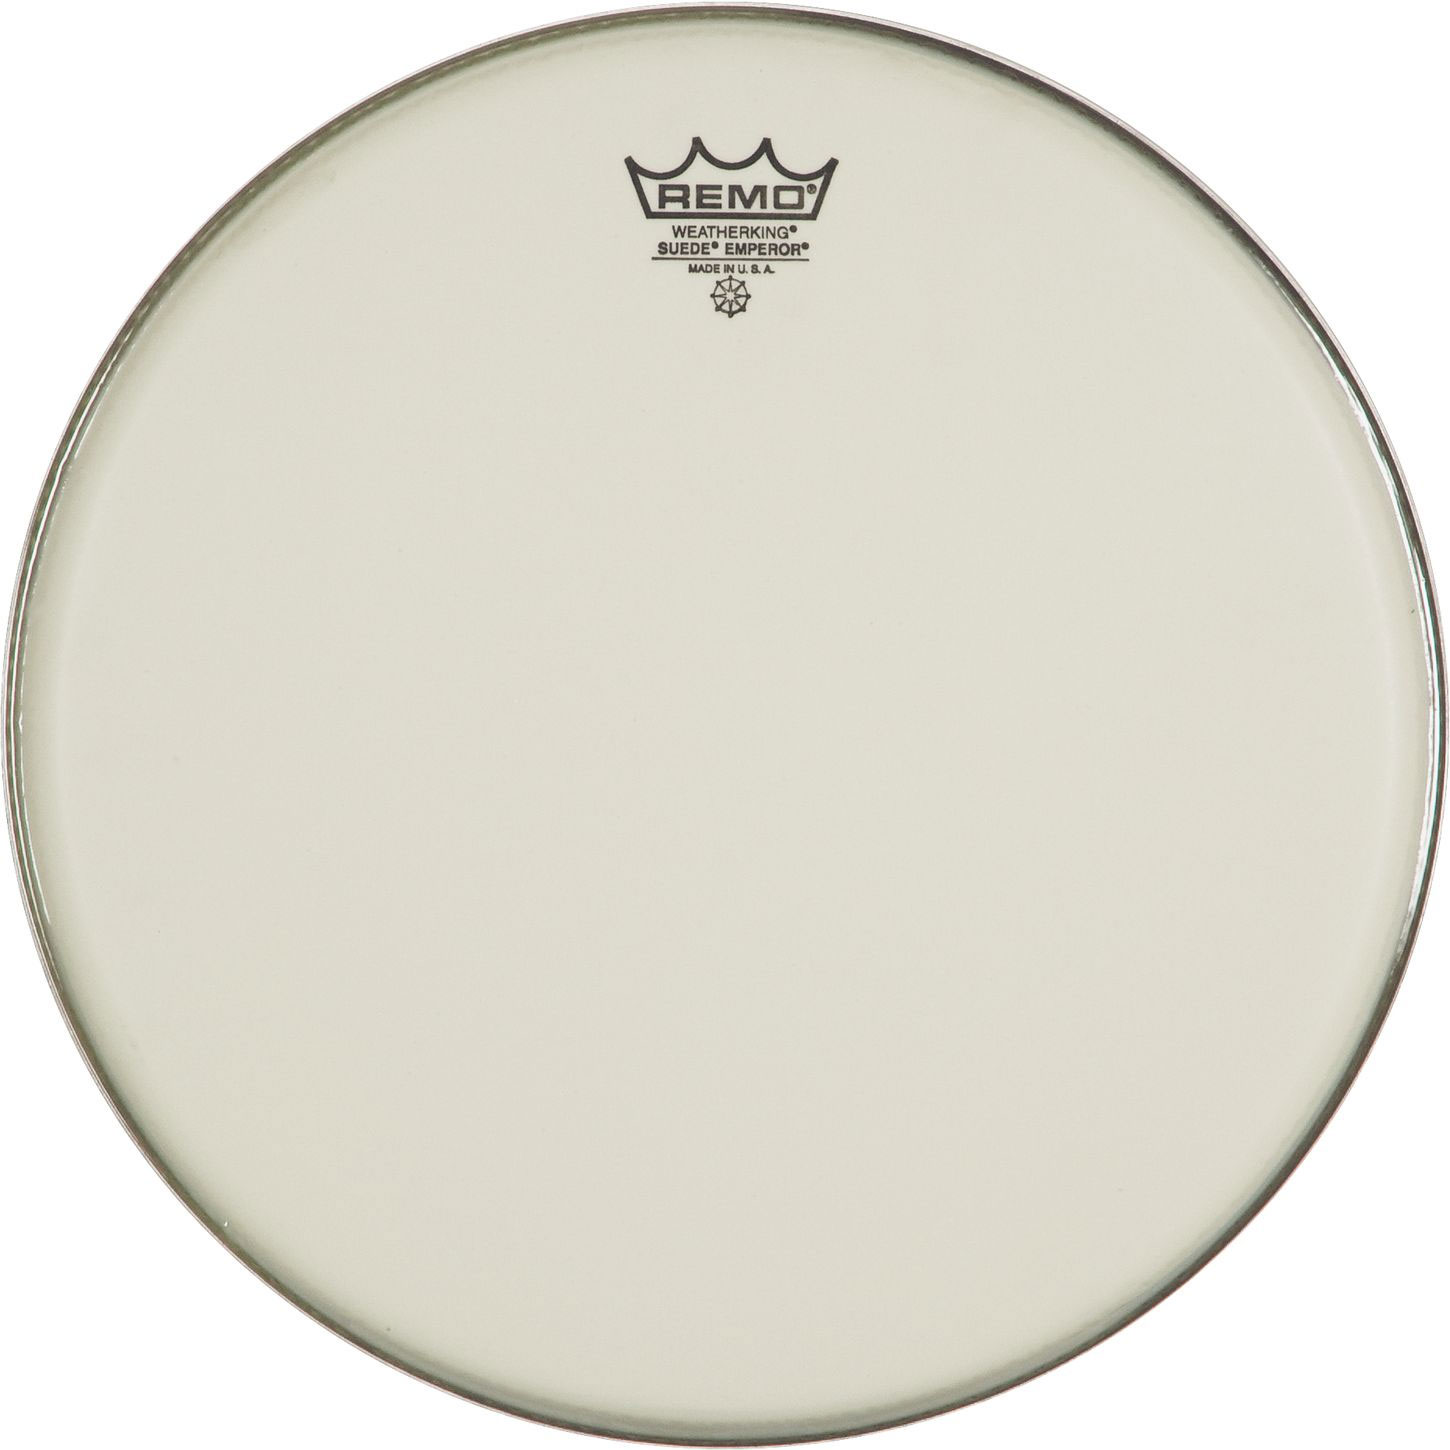 "Remo 16"" Emperor Suede Drum Head"